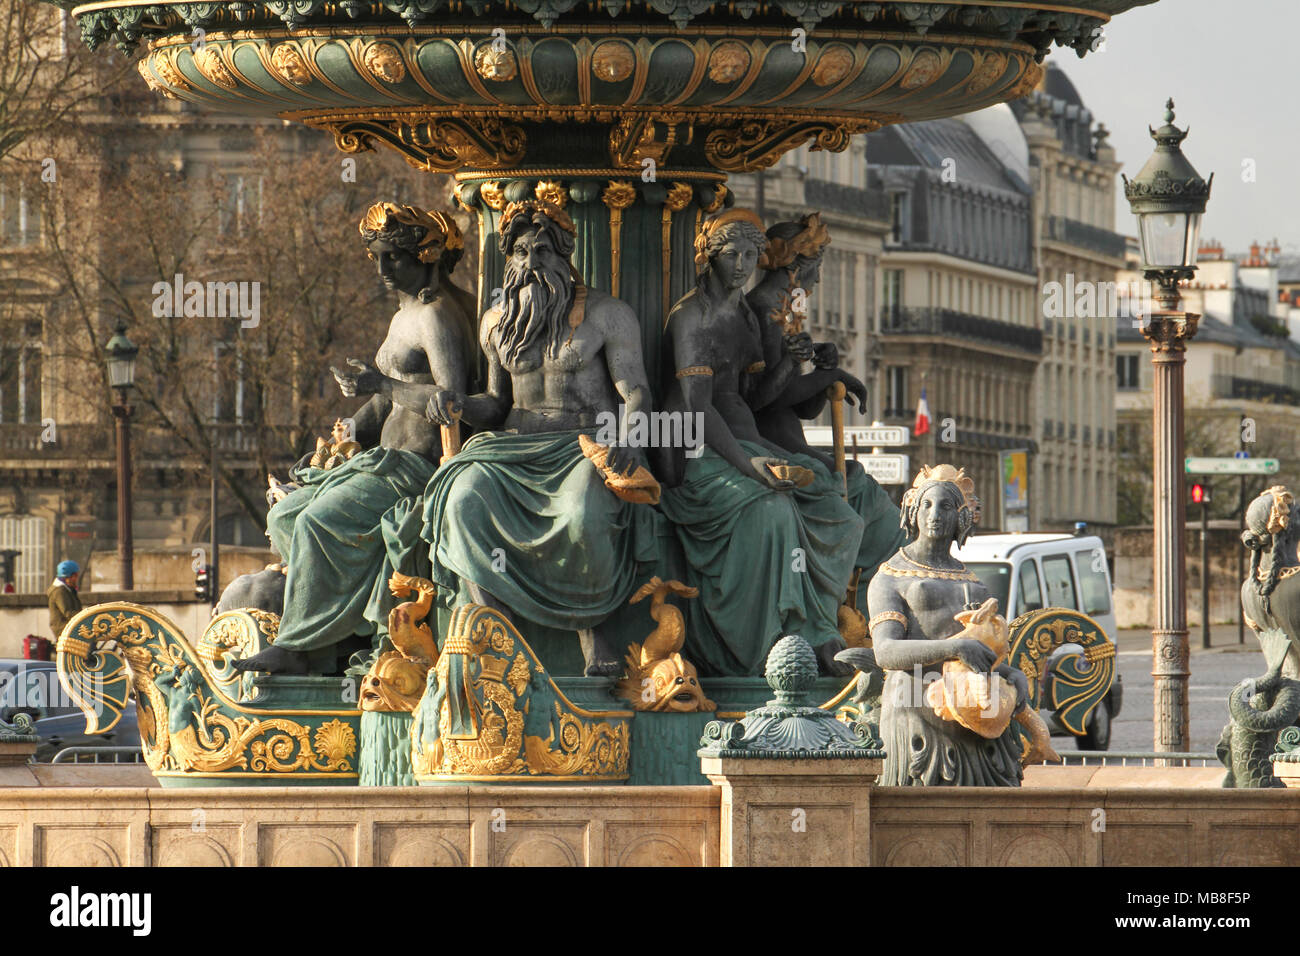 Paris, France -  04 April 2018. The Fontaines de la Concorde, one of two with the Obelisk of Luxor and Eiffel Tower seen on the background. General view of Paris, France. @ David Mbiyu/Alamy Live News - Stock Image